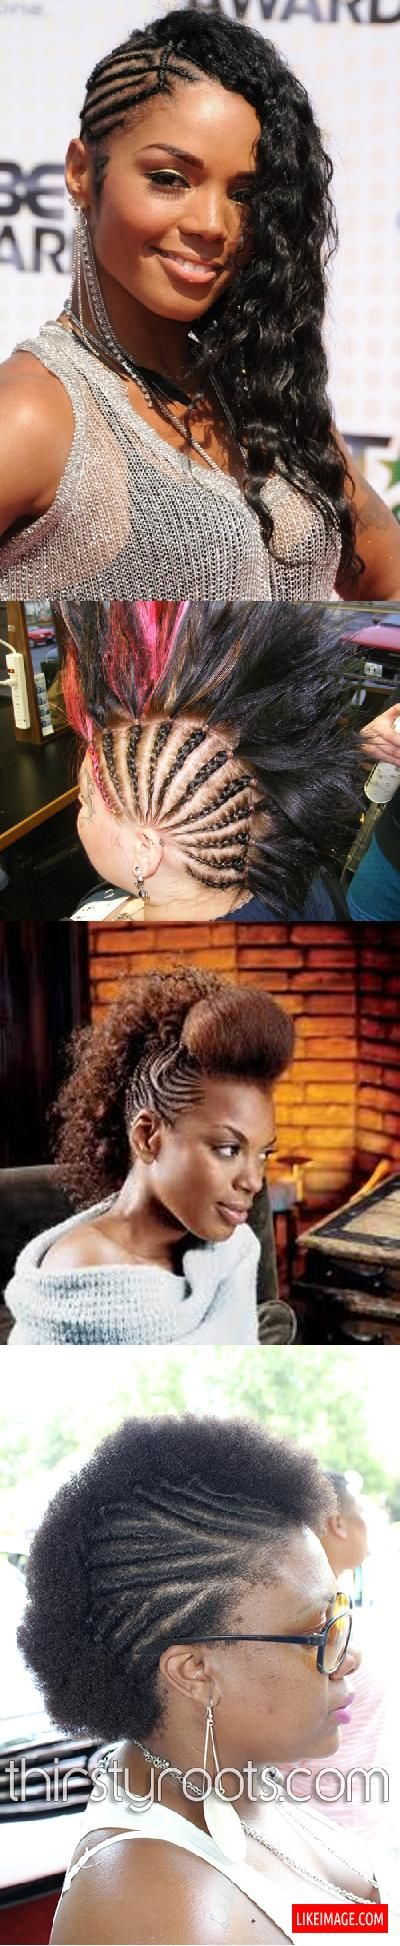 Stupendous 1000 Ideas About Braided Mohawk Hairstyles On Pinterest French Short Hairstyles Gunalazisus